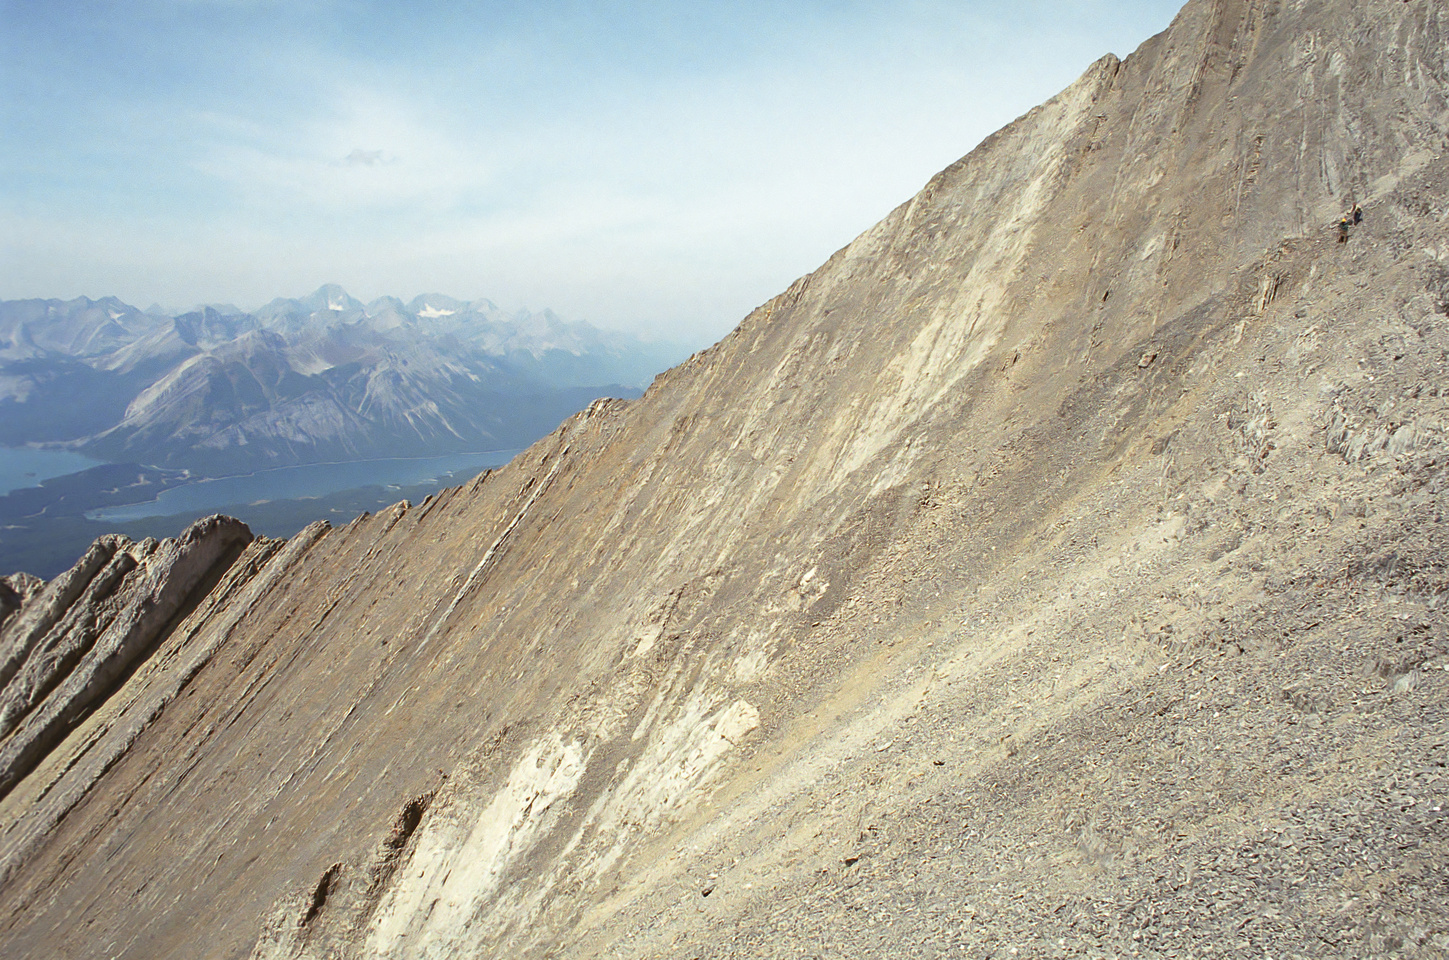 The terrain around the summit of Pocaterra on the west side of the mountain.